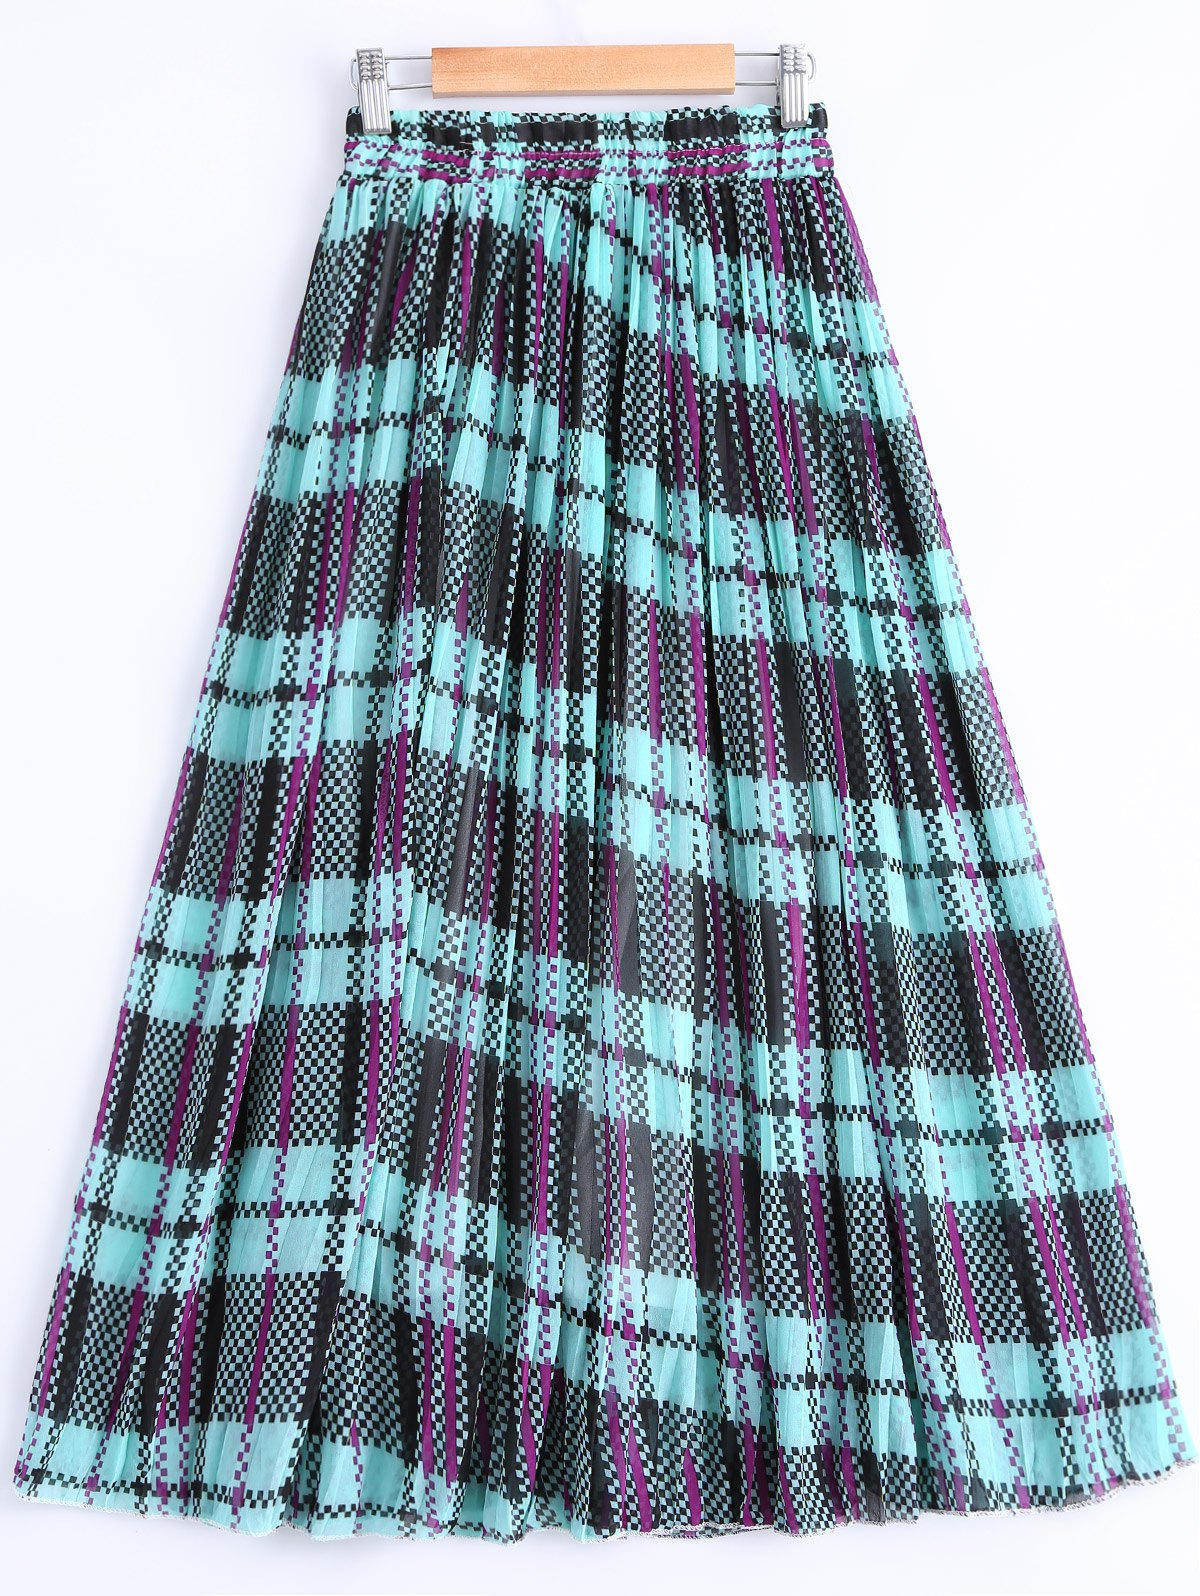 Fashionable Women's Color Block Print Pleated Skirt - TURQUOISE ONE SIZE(FIT SIZE XS TO M)